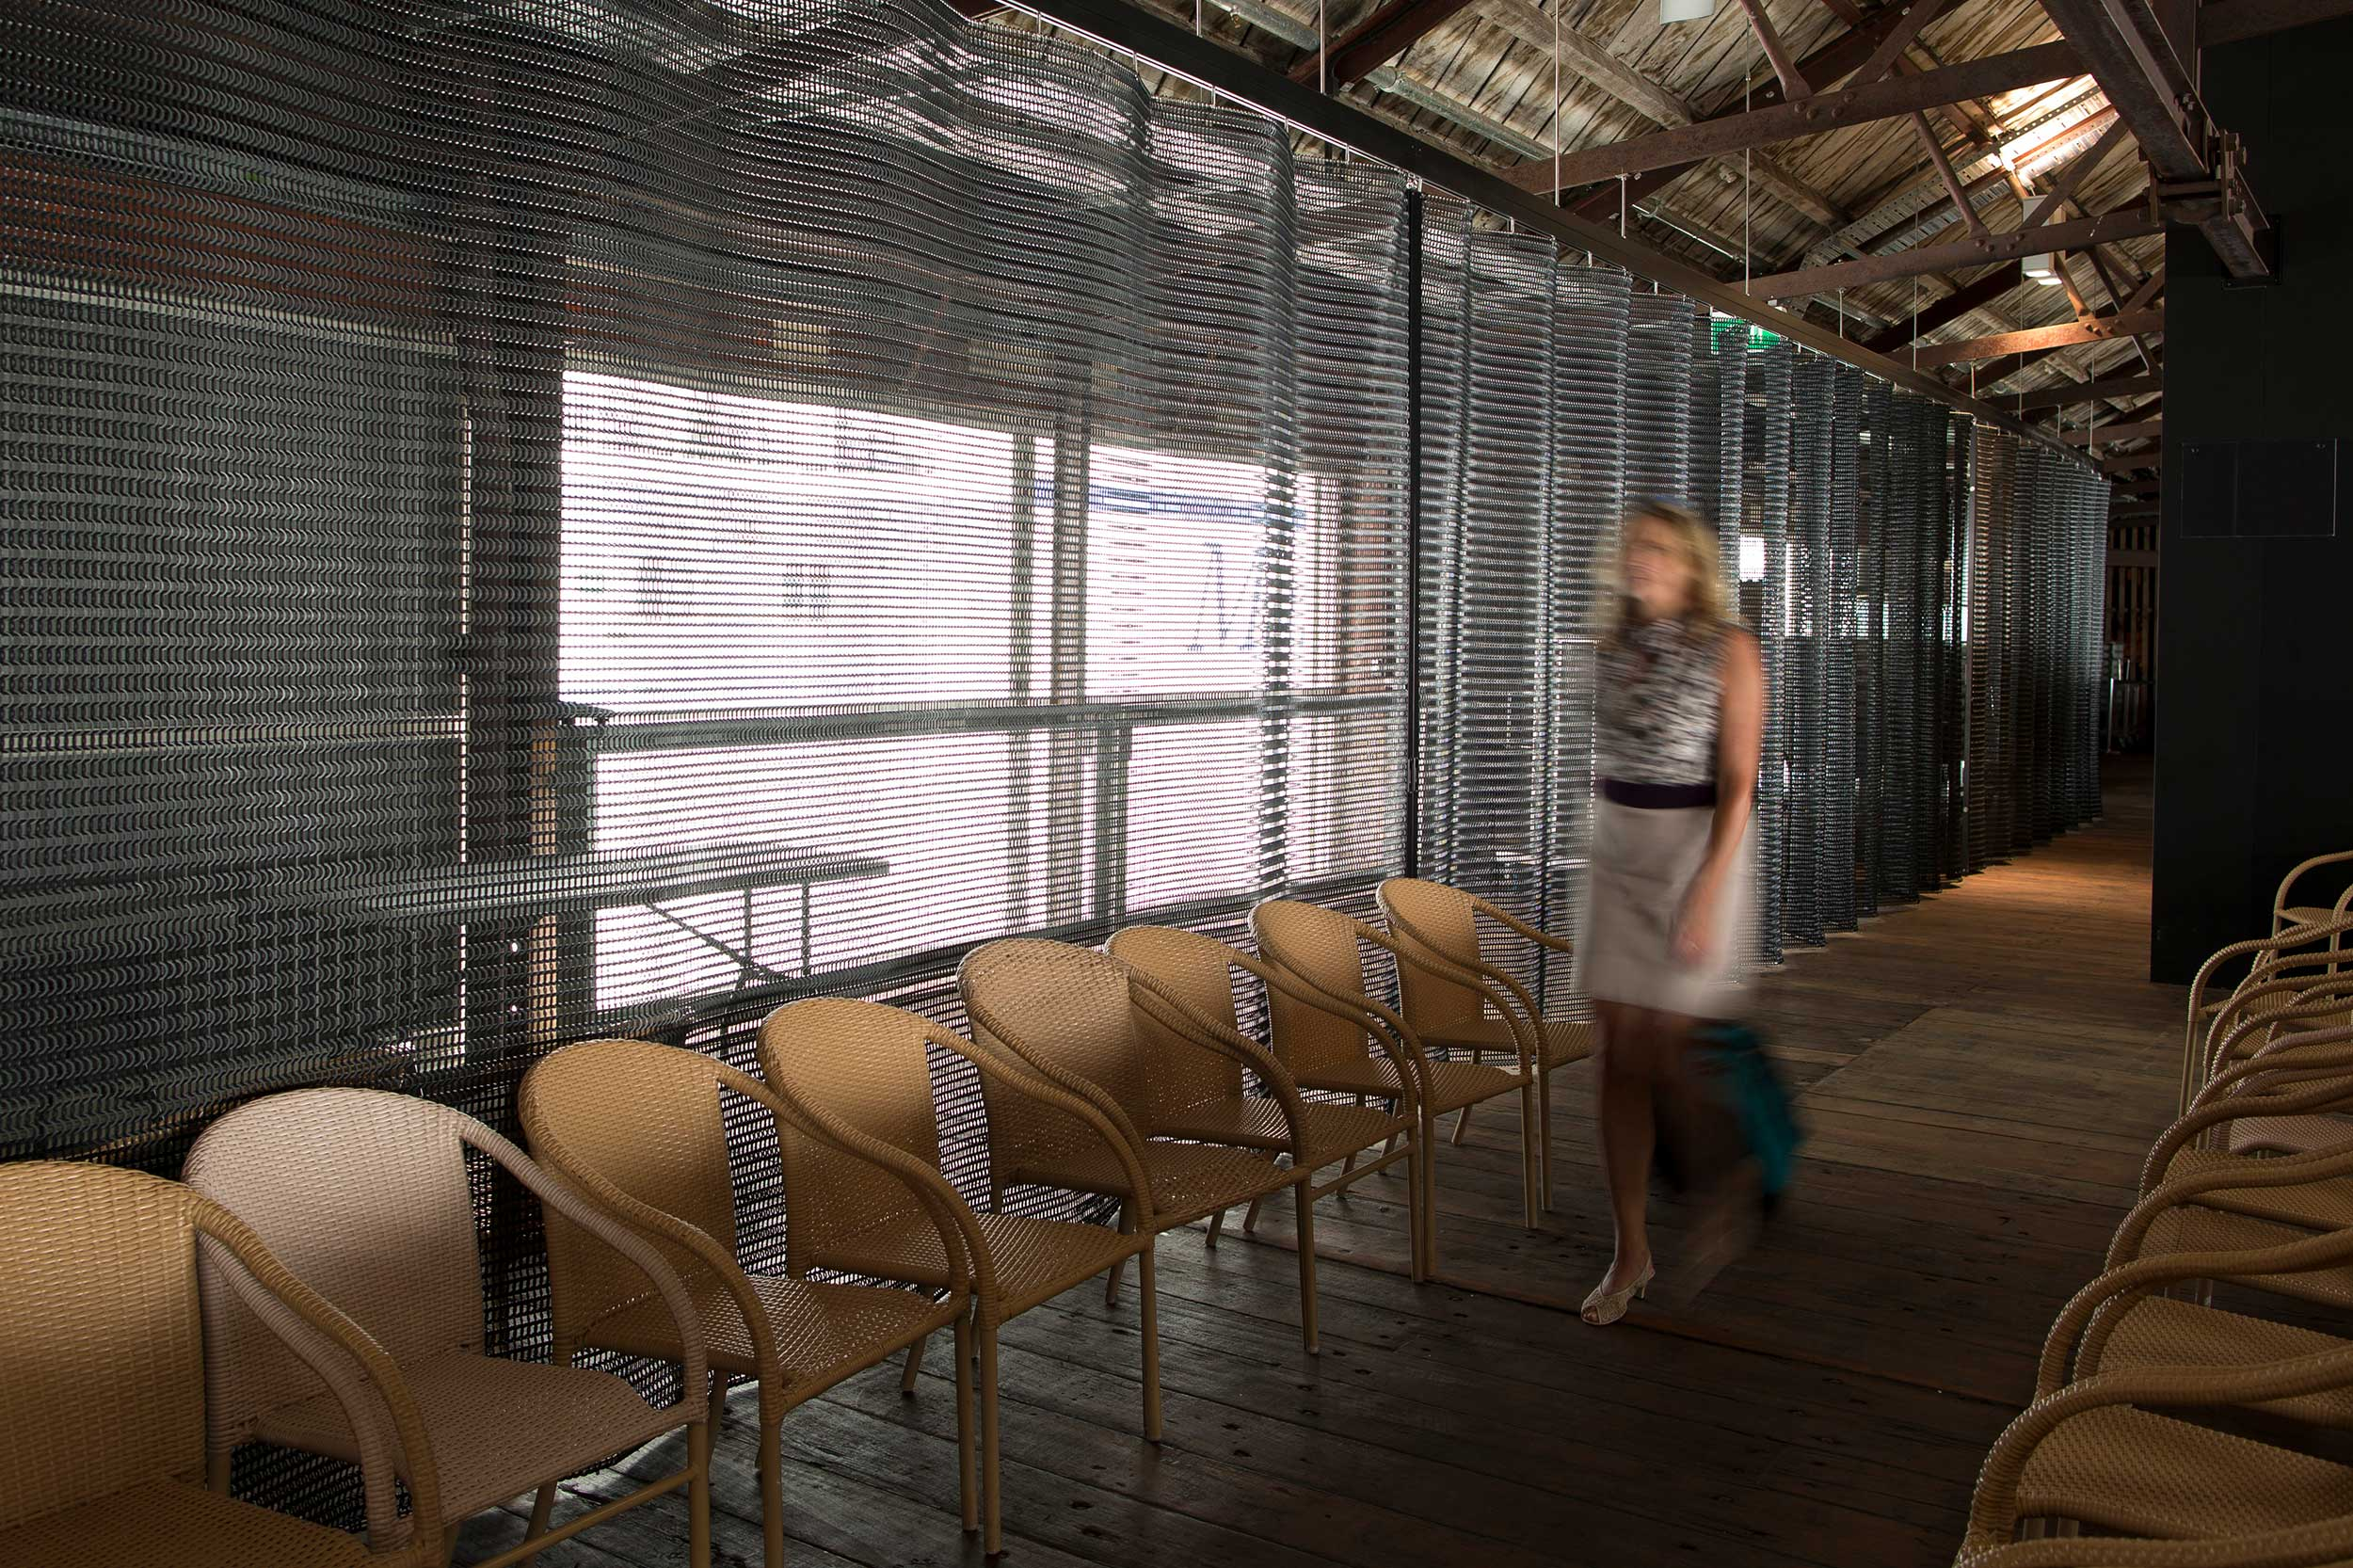 Security with Style for Cruise Ship Terminal   Shed 10 is a heritage listed events space and cruise ship terminal on Auckland City's waterfront. Kaynemaile's deterrent folding screens were chosen to compliment the historical aesthetic of the building, provide security and...  Read more